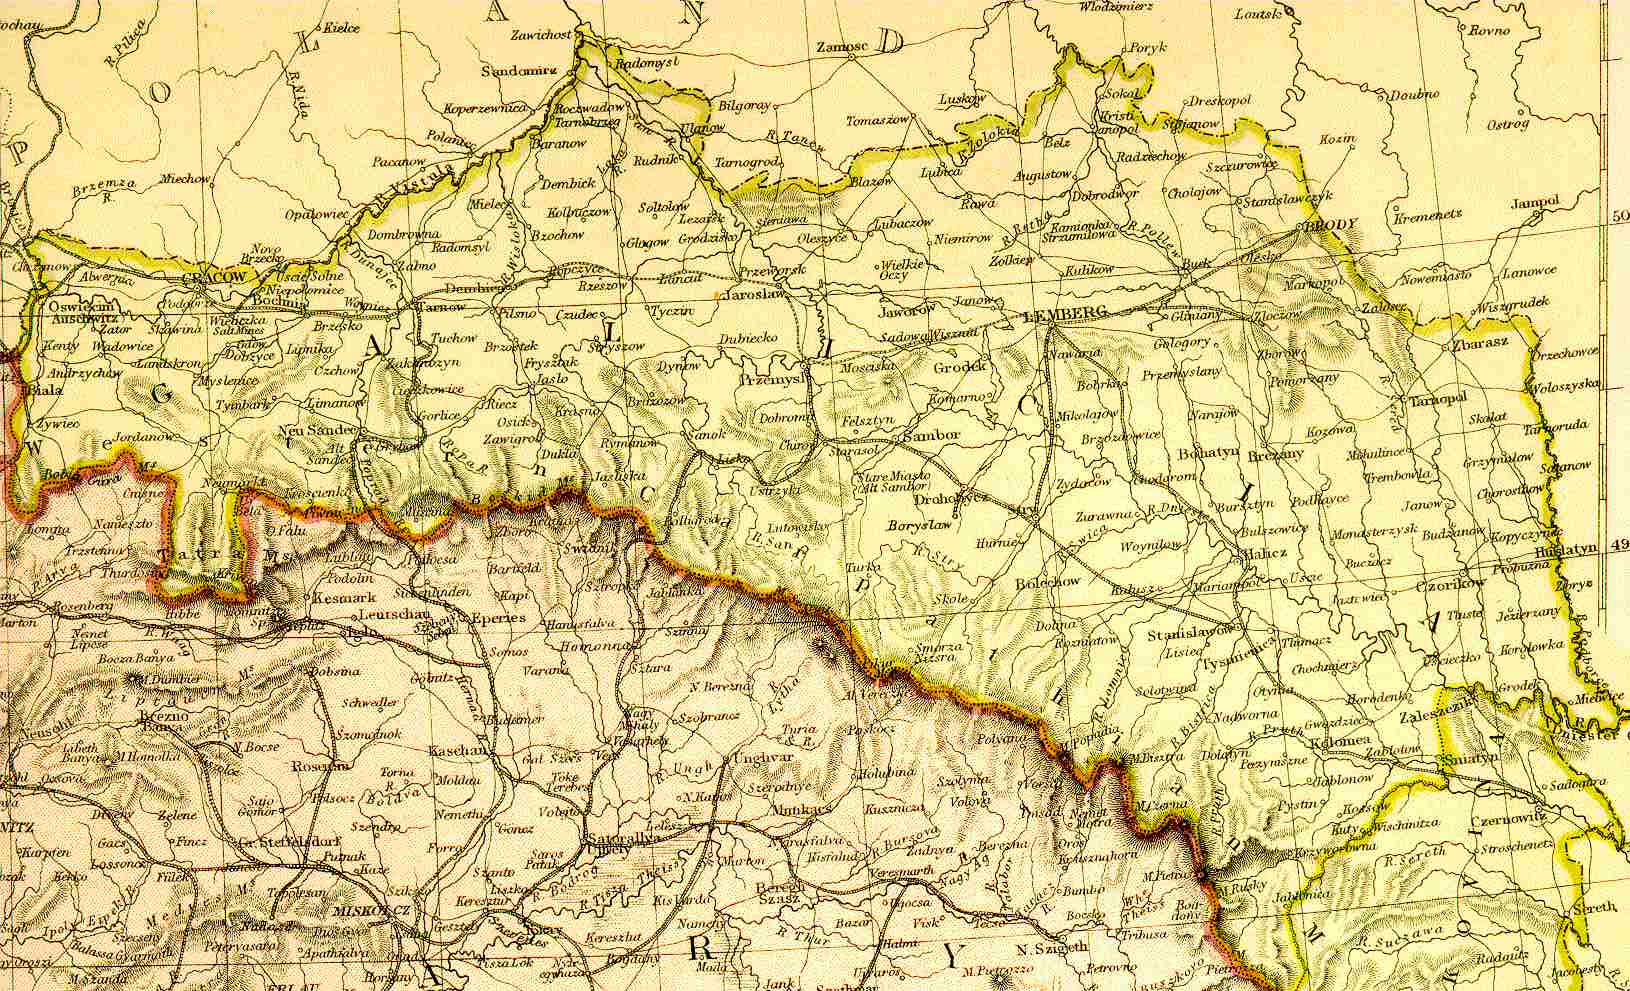 1882 map of